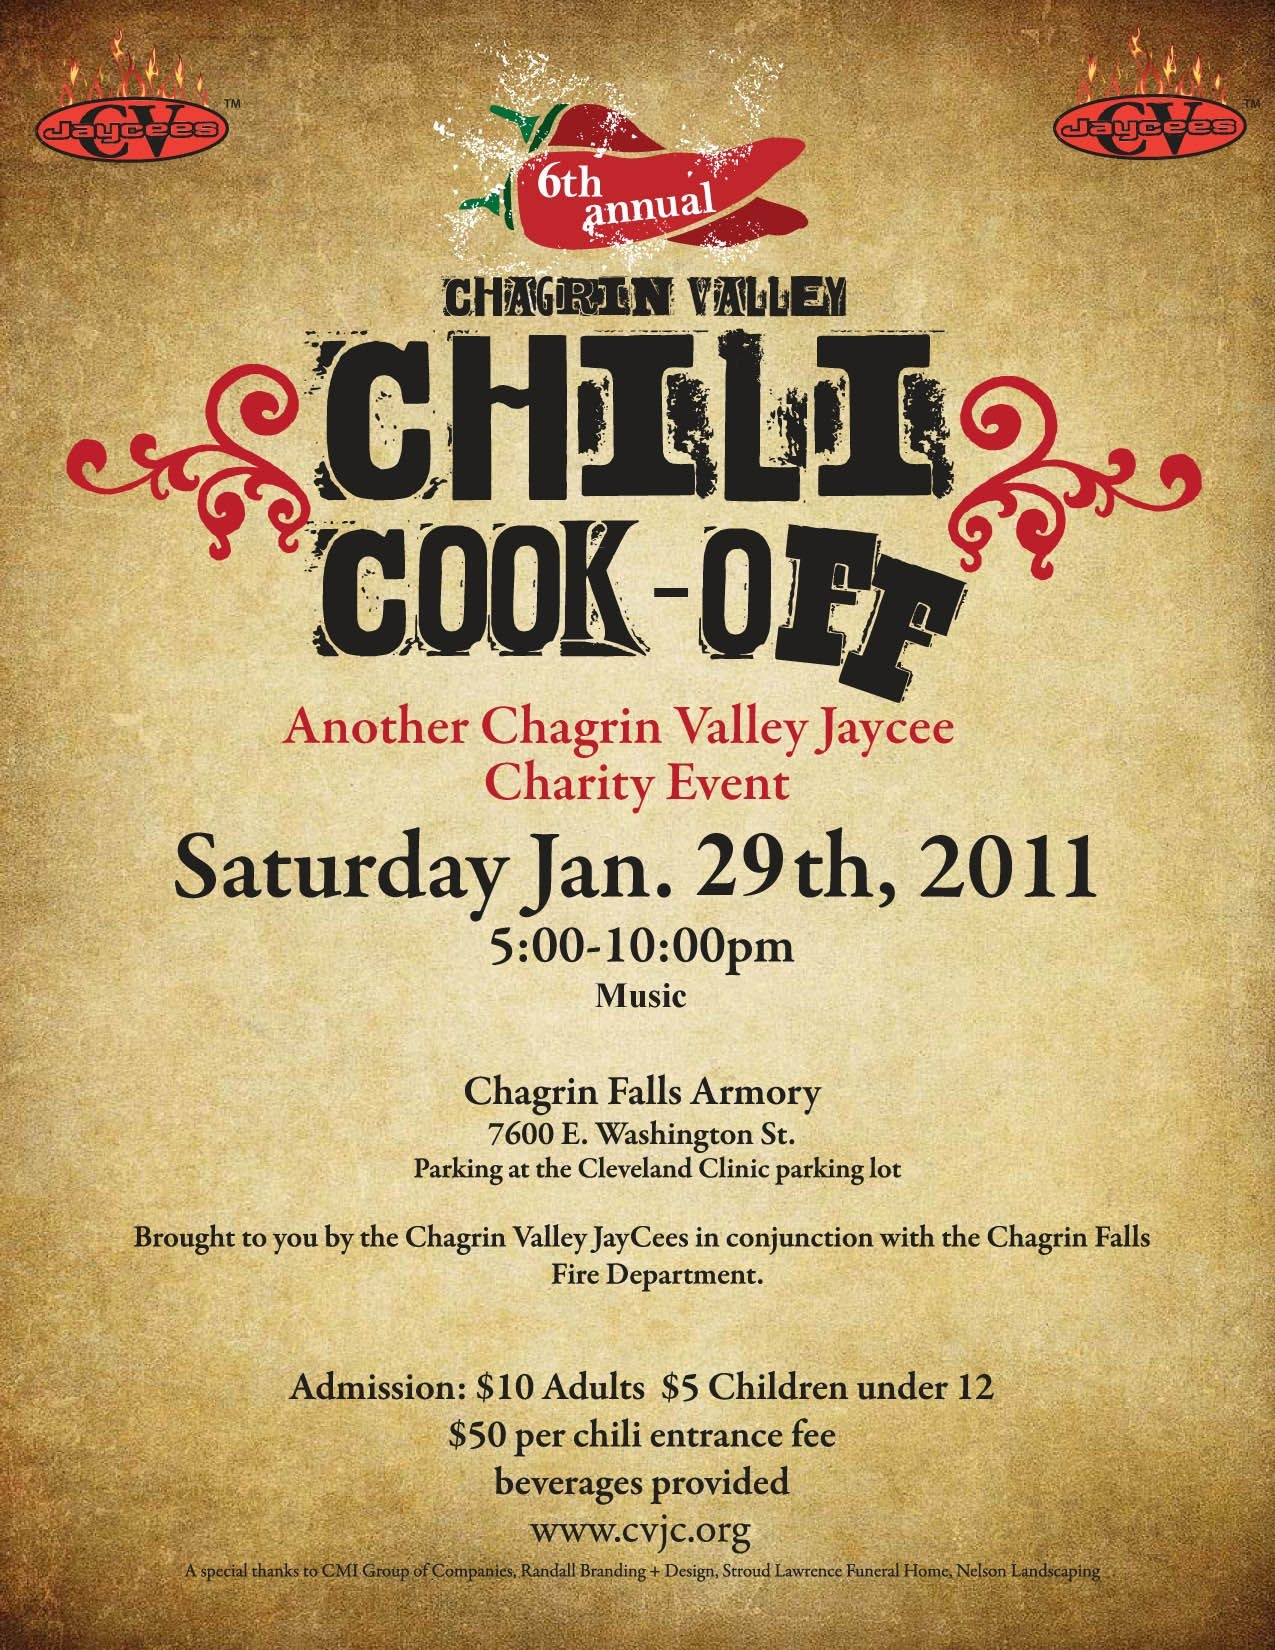 Chili Cook Off Flyer Template Free Printable - Wow - Image - Free Printable Event Flyer Templates